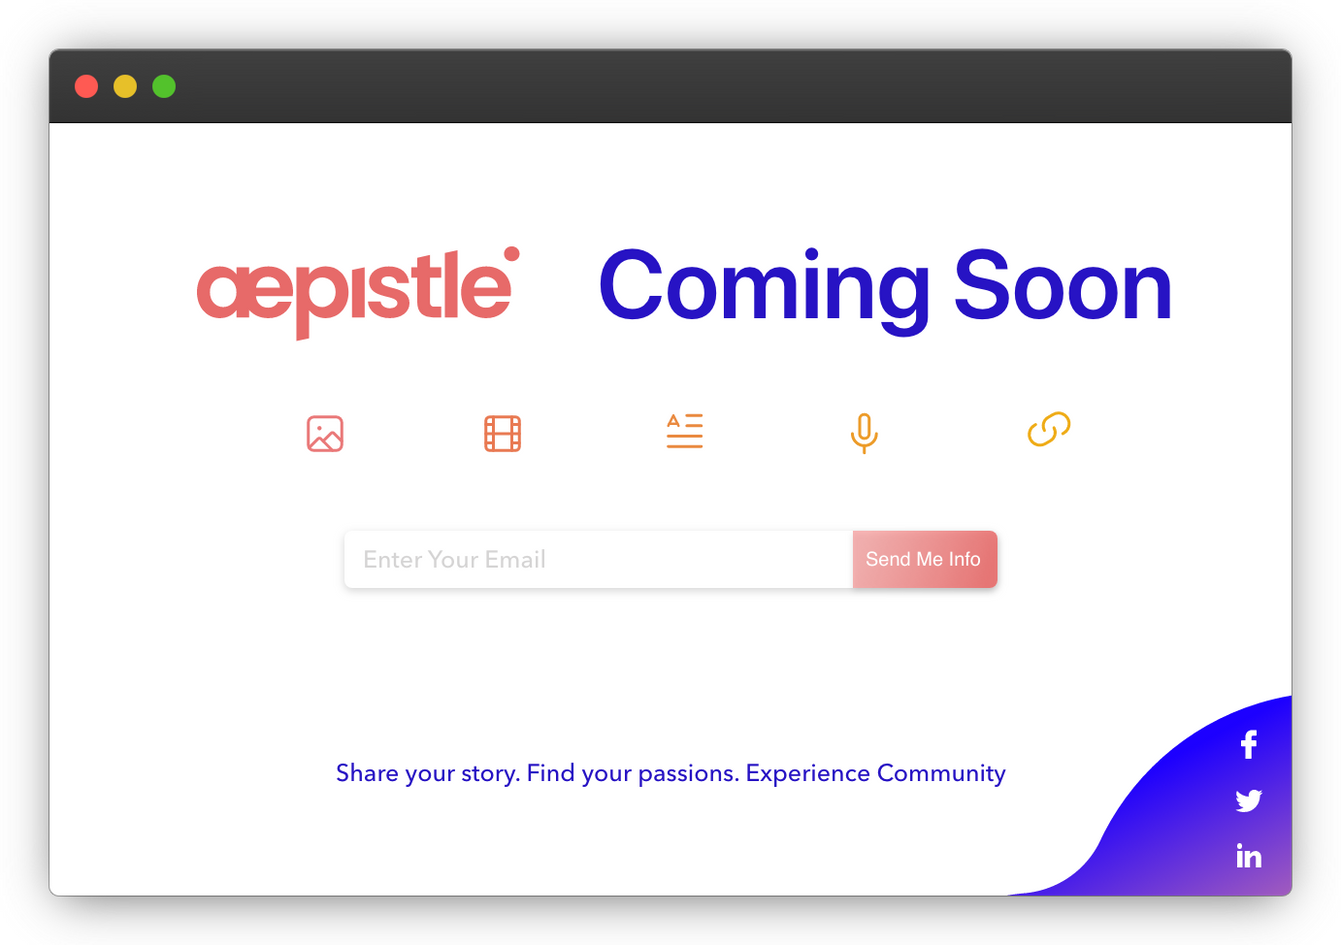 Aepistle Coming Soon #2.png